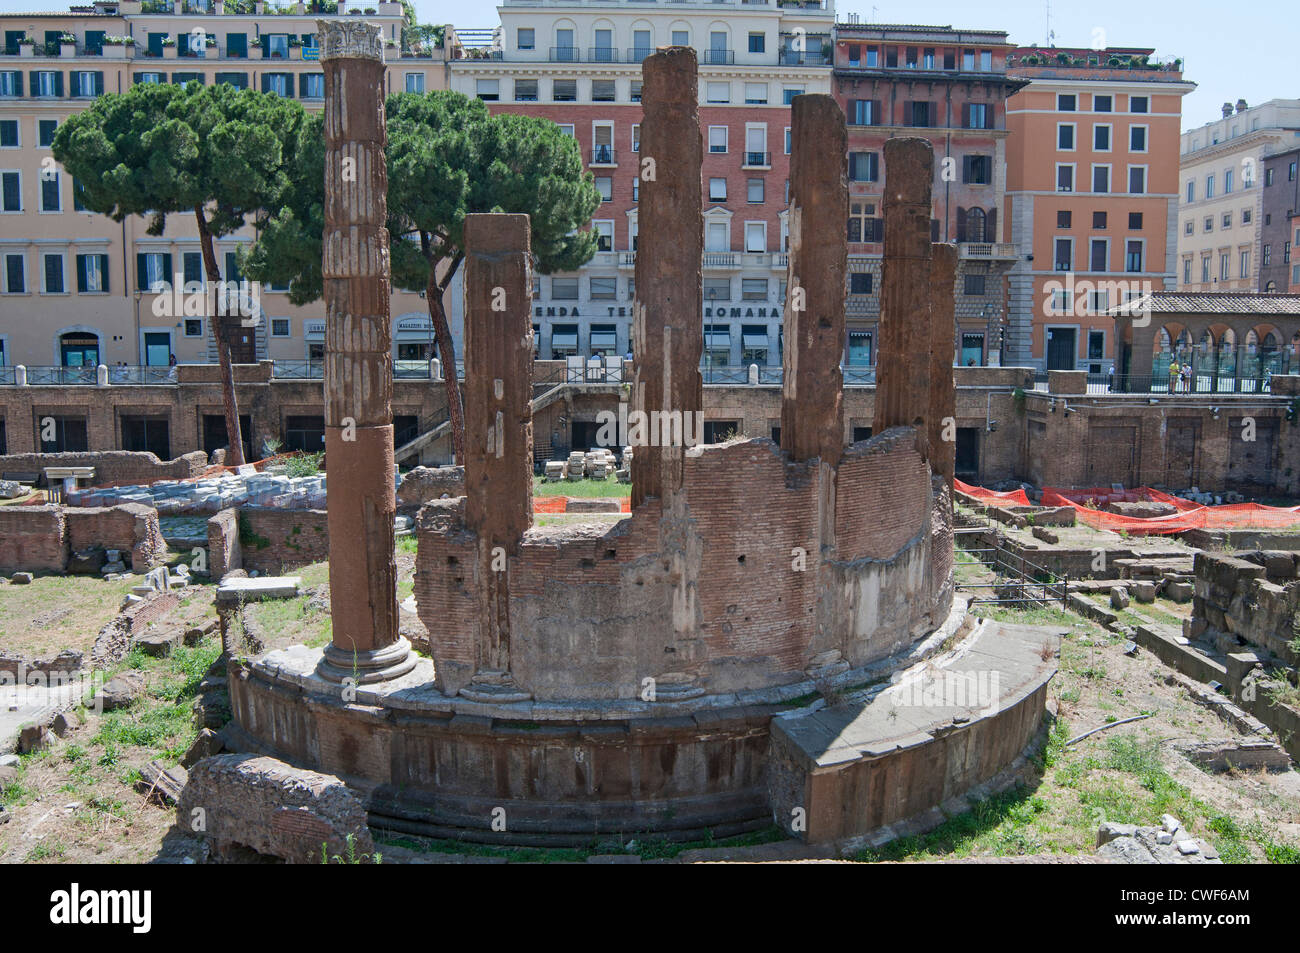 Aedes Fortunae Huiusce in the background of Largo di Torre Argentina which is a square in Rome, Italy - Stock Image